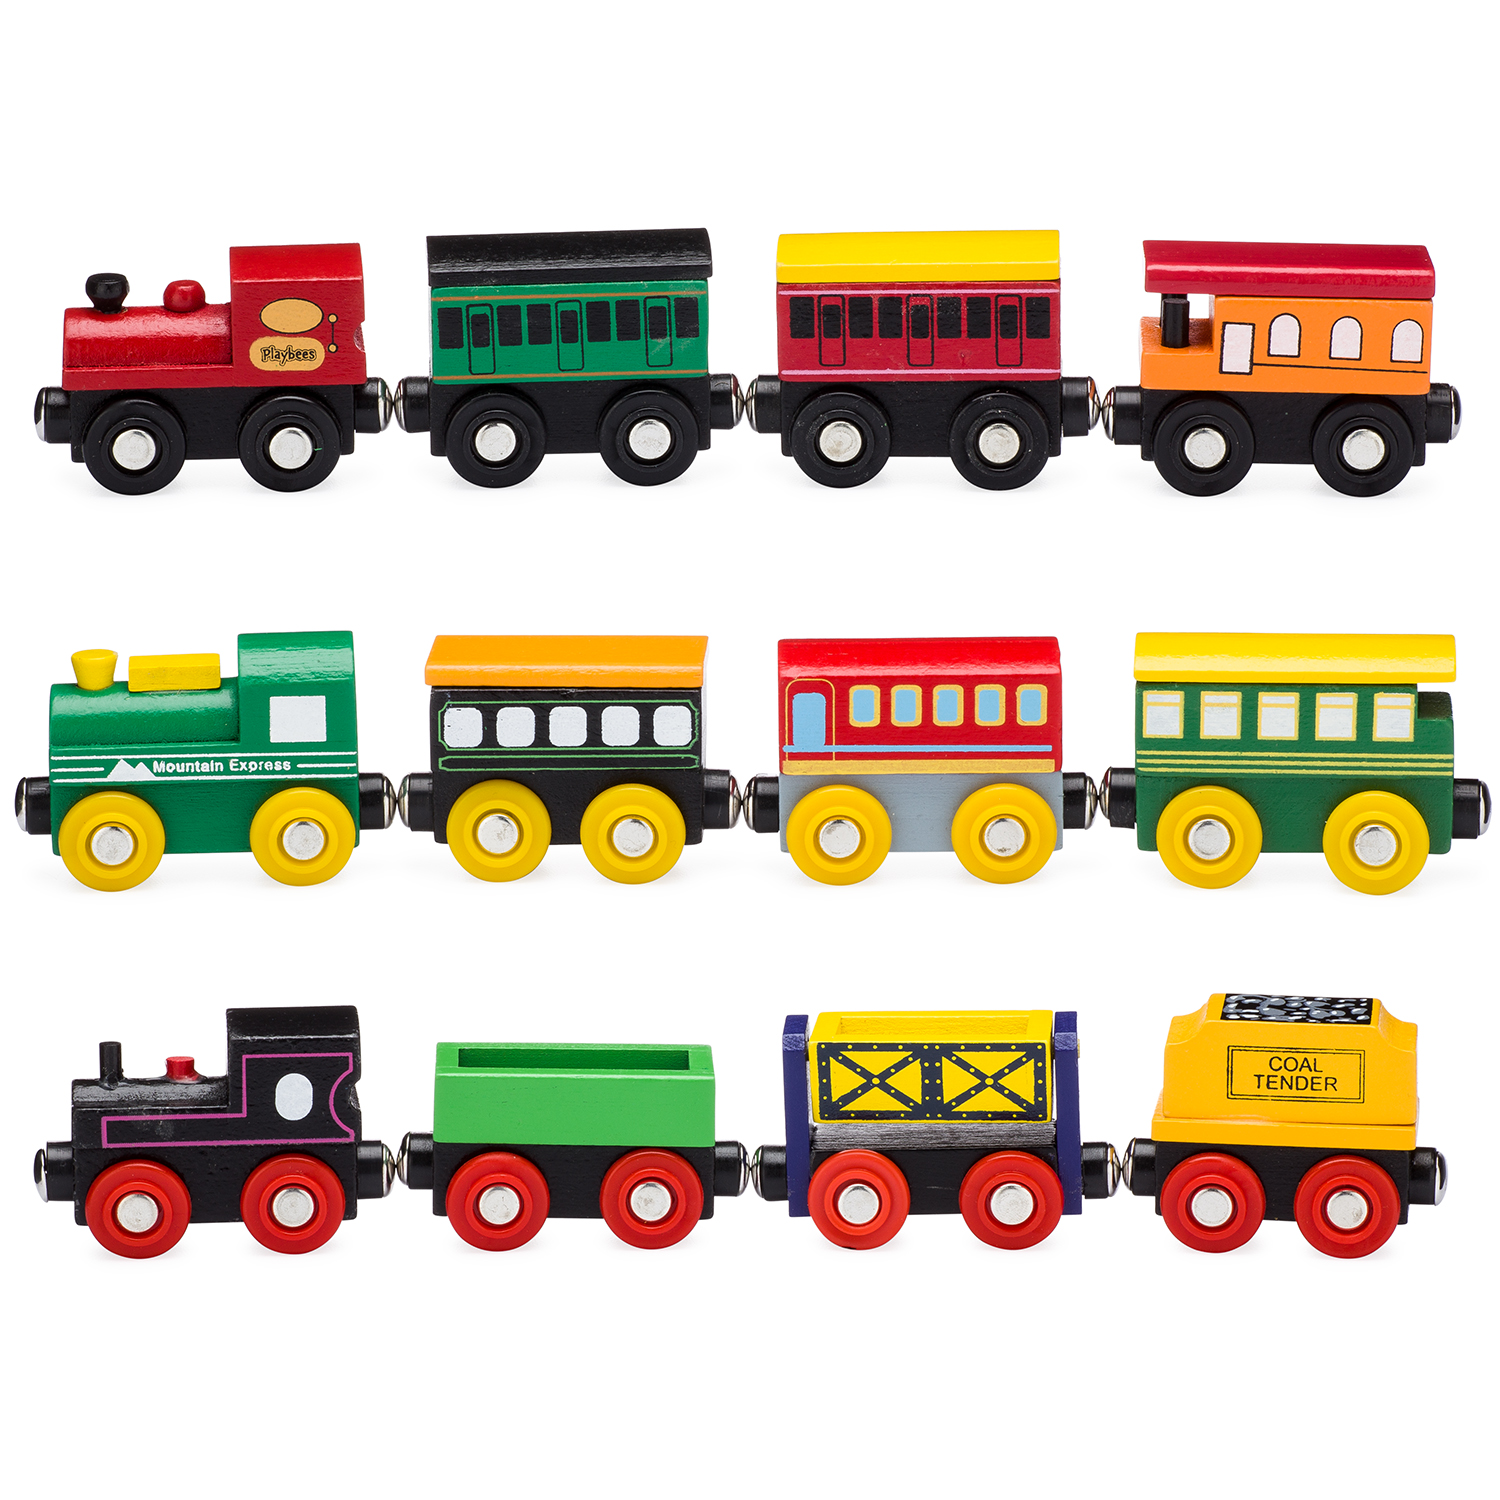 Cool Toy Train Cars : Playbees piece wooden toy train cars engine set